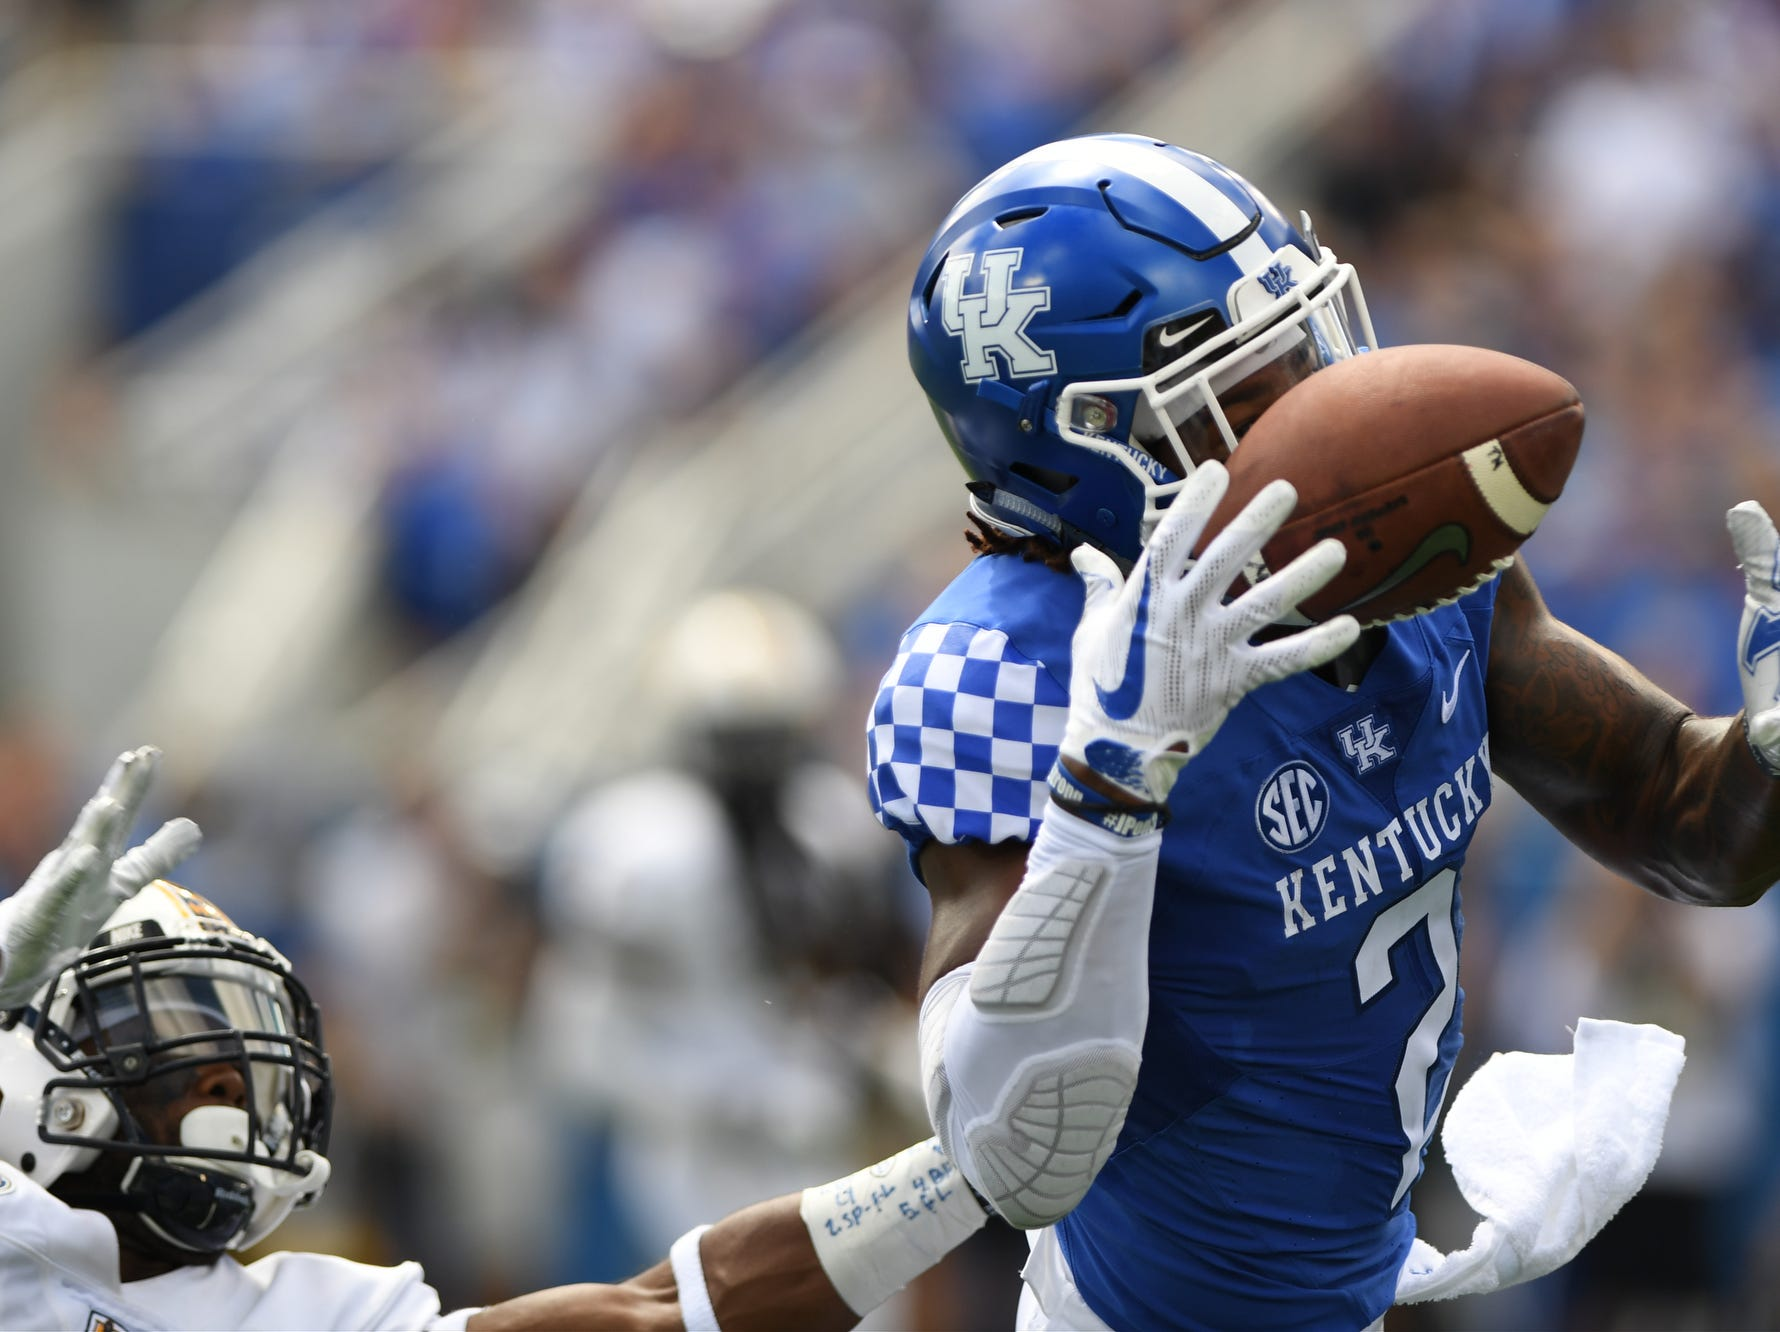 UK WR Dorian Baker is unable to make the catch during the University of Kentucky football game against Murray State at Kroger Field in Lexington, Kentucky on Saturday, September 15, 2018.